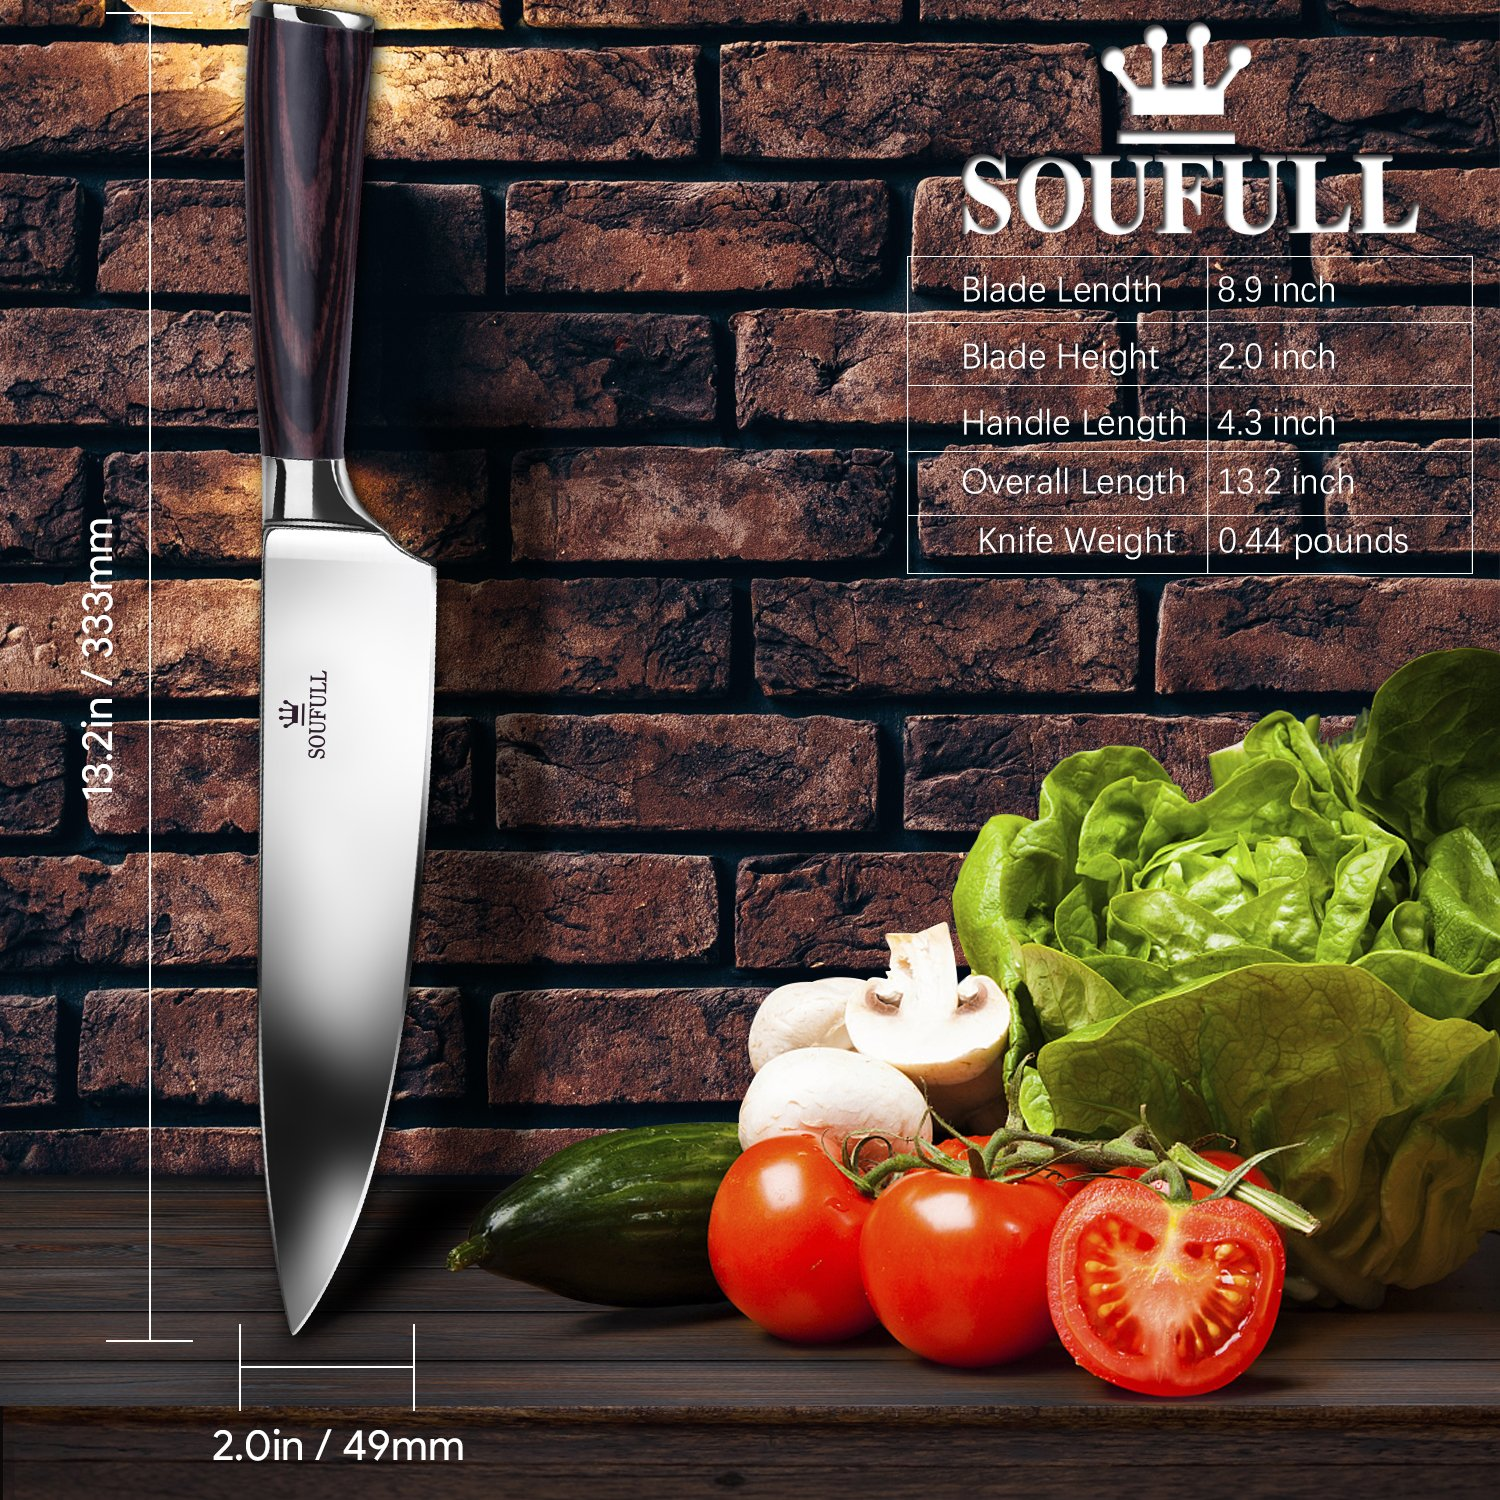 Professional Chef Knife, Soufull 8 inch Stainless Steel Kitchen Knife-Razor Sharp Durable Blade,Well Balanced Ergonomic Pakka Wood Handle,Multipurpose Top Chef's Knife with Gift Box by Soufull (Image #4)